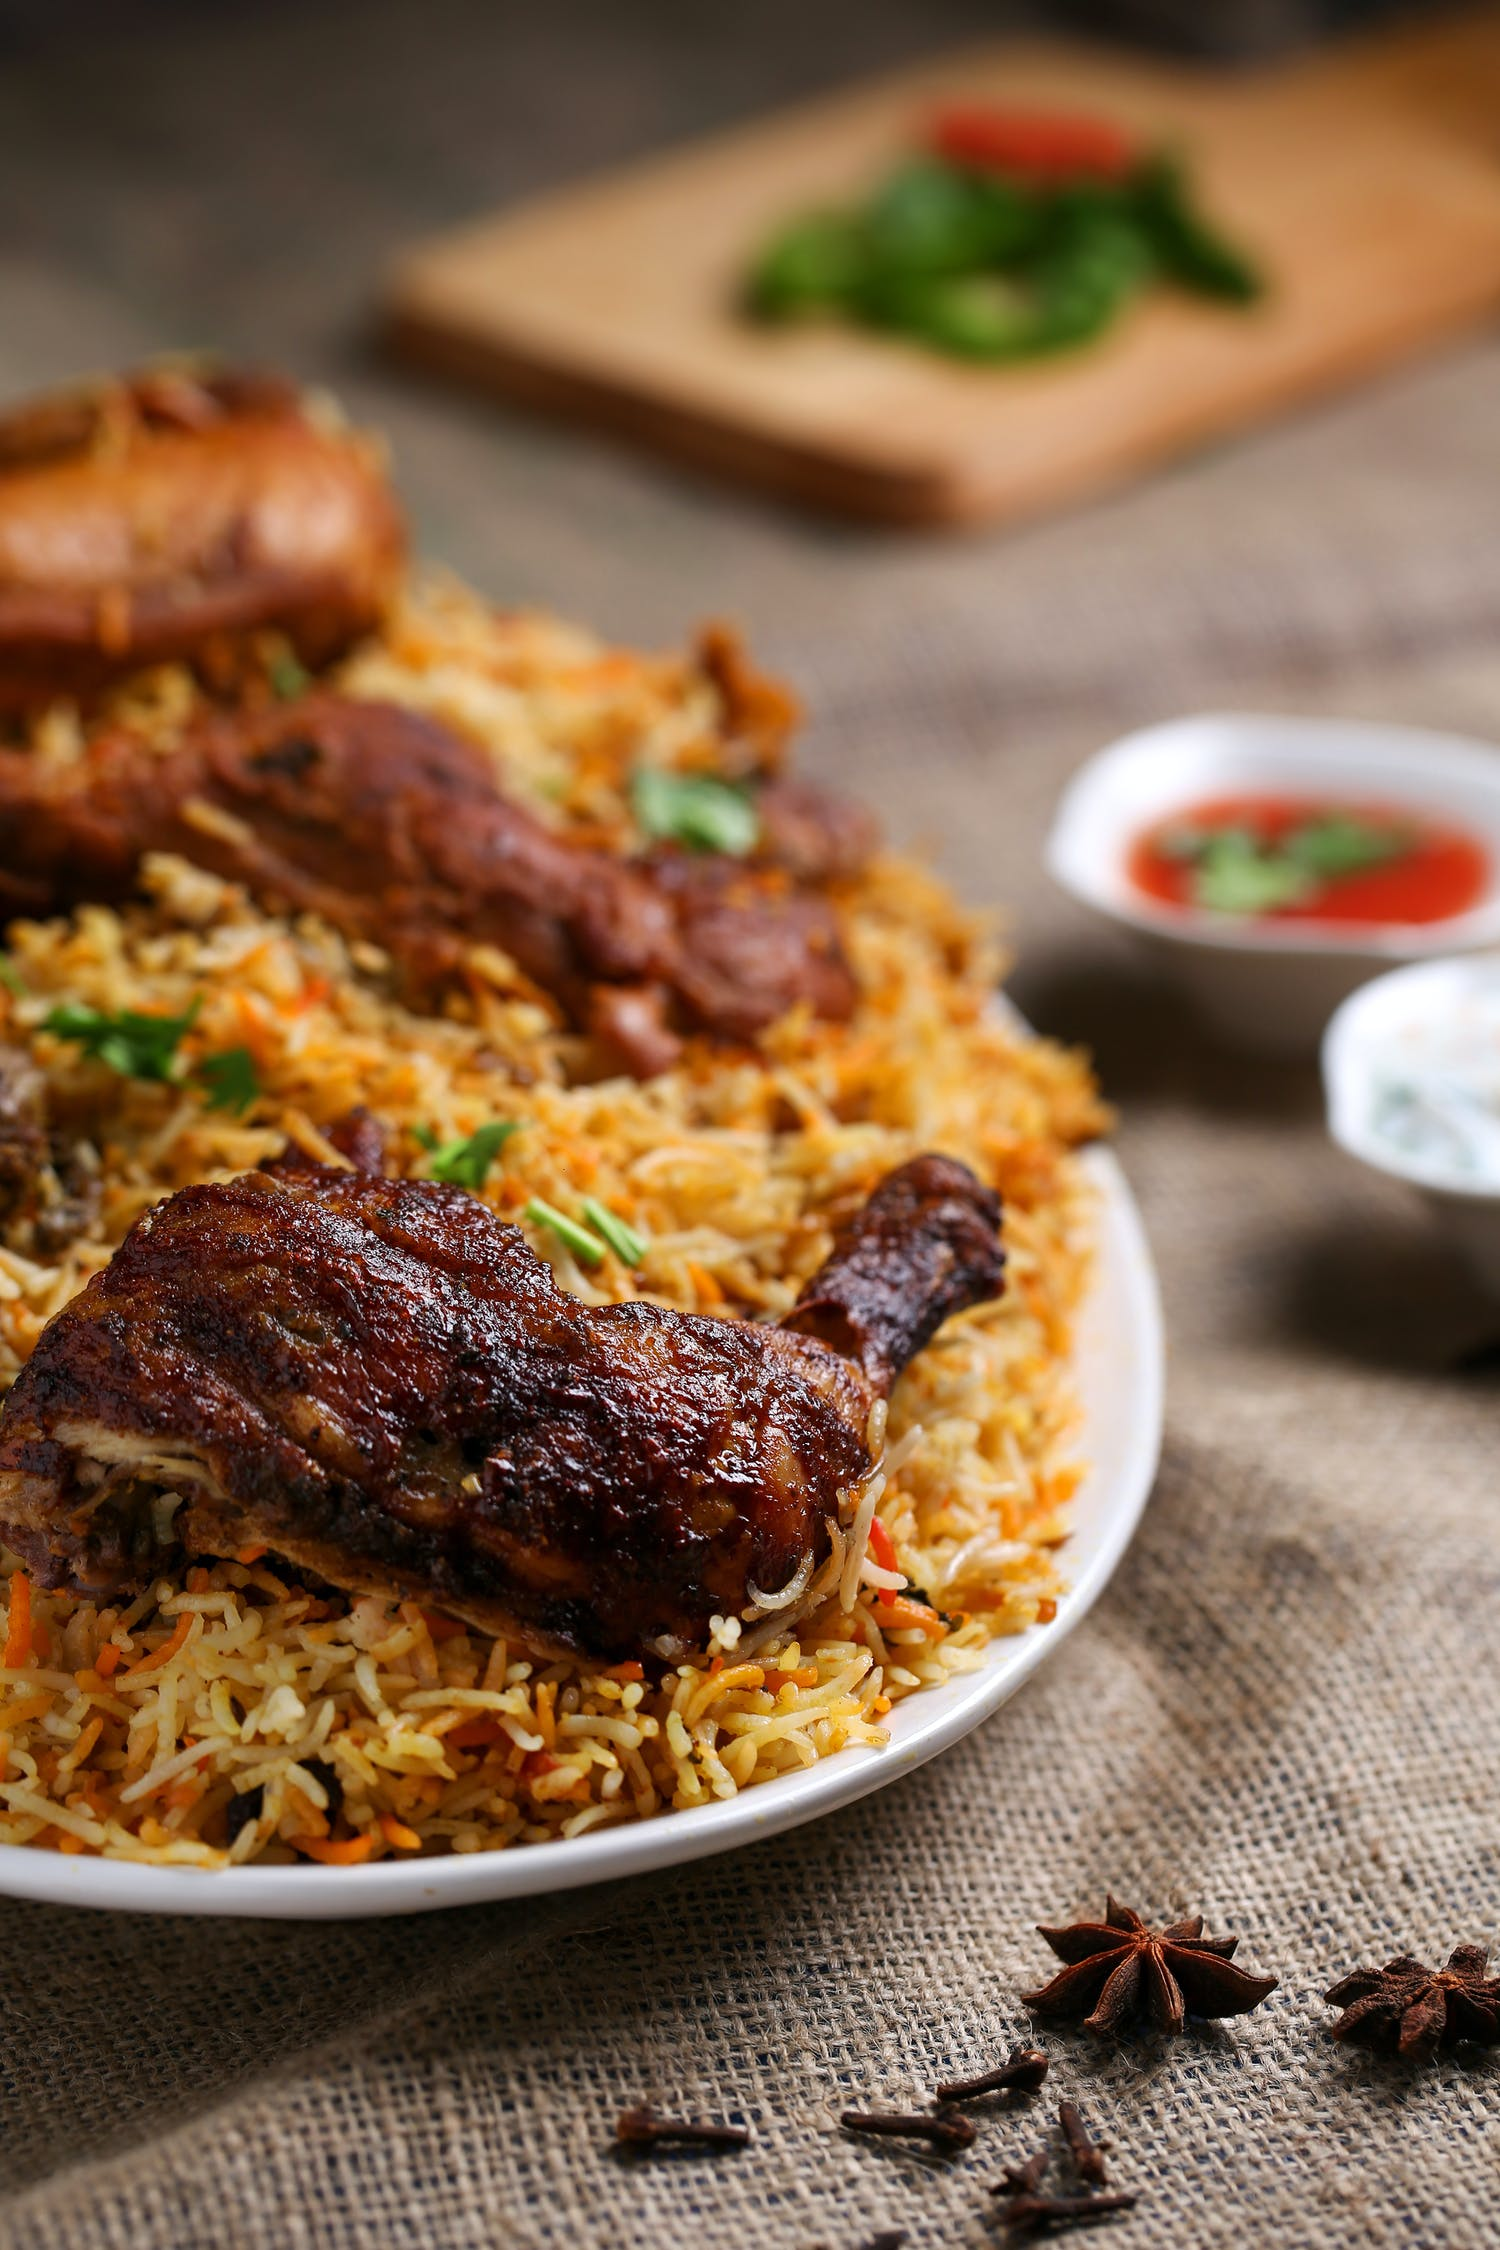 Plate of Rice and Cooked Meat